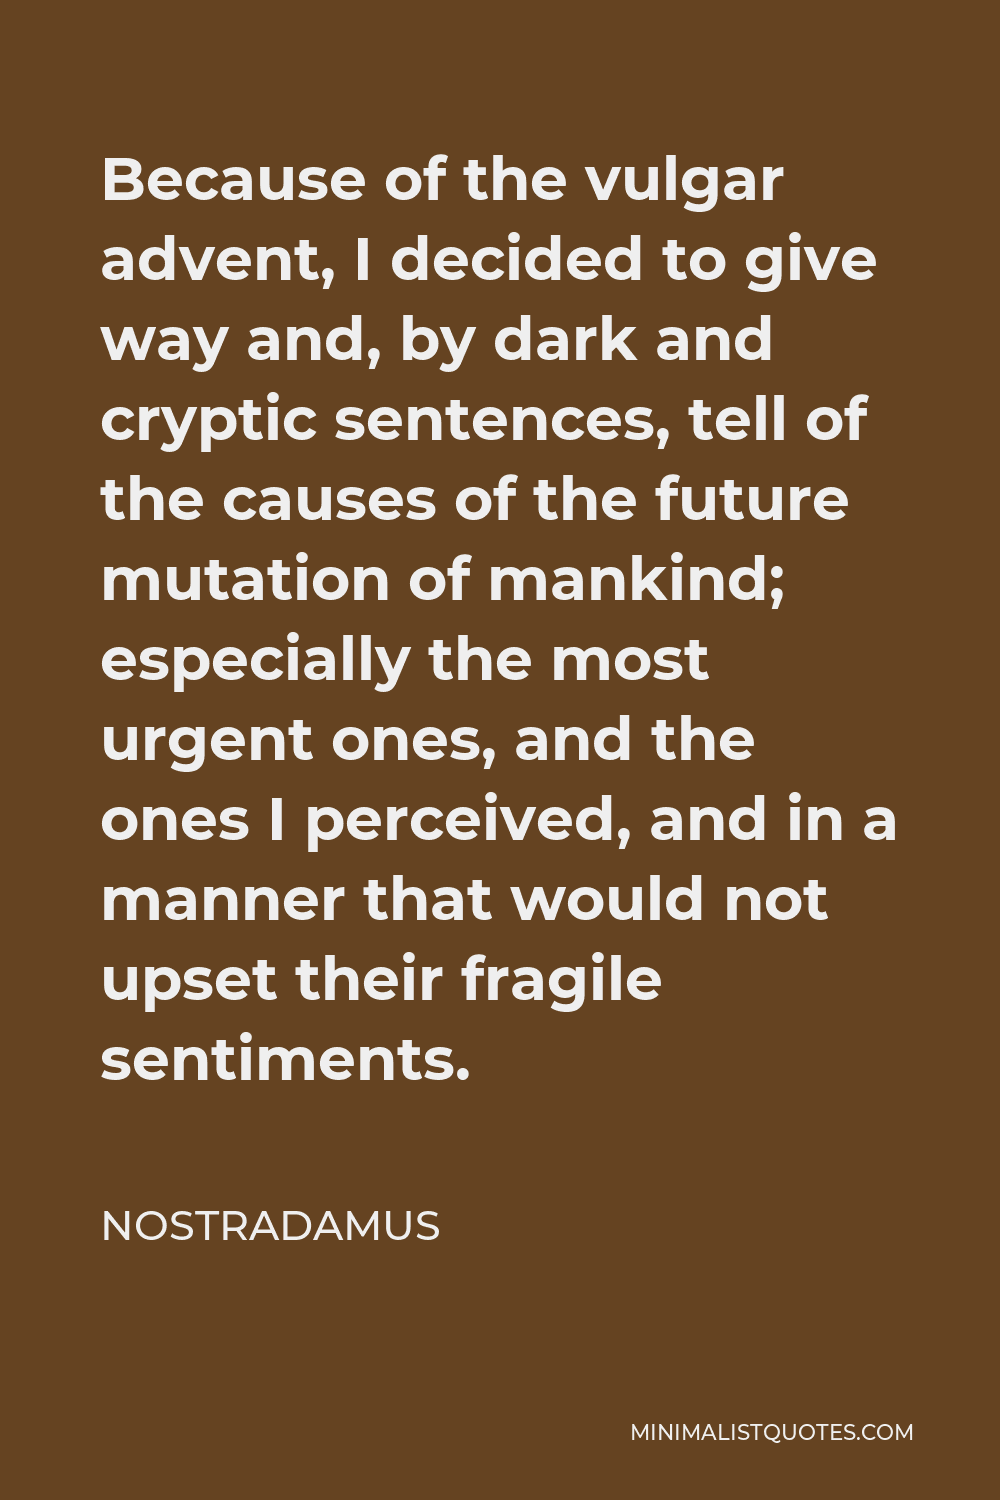 Nostradamus Quote - Because of the vulgar advent, I decided to give way and, by dark and cryptic sentences, tell of the causes of the future mutation of mankind; especially the most urgent ones, and the ones I perceived, and in a manner that would not upset their fragile sentiments.